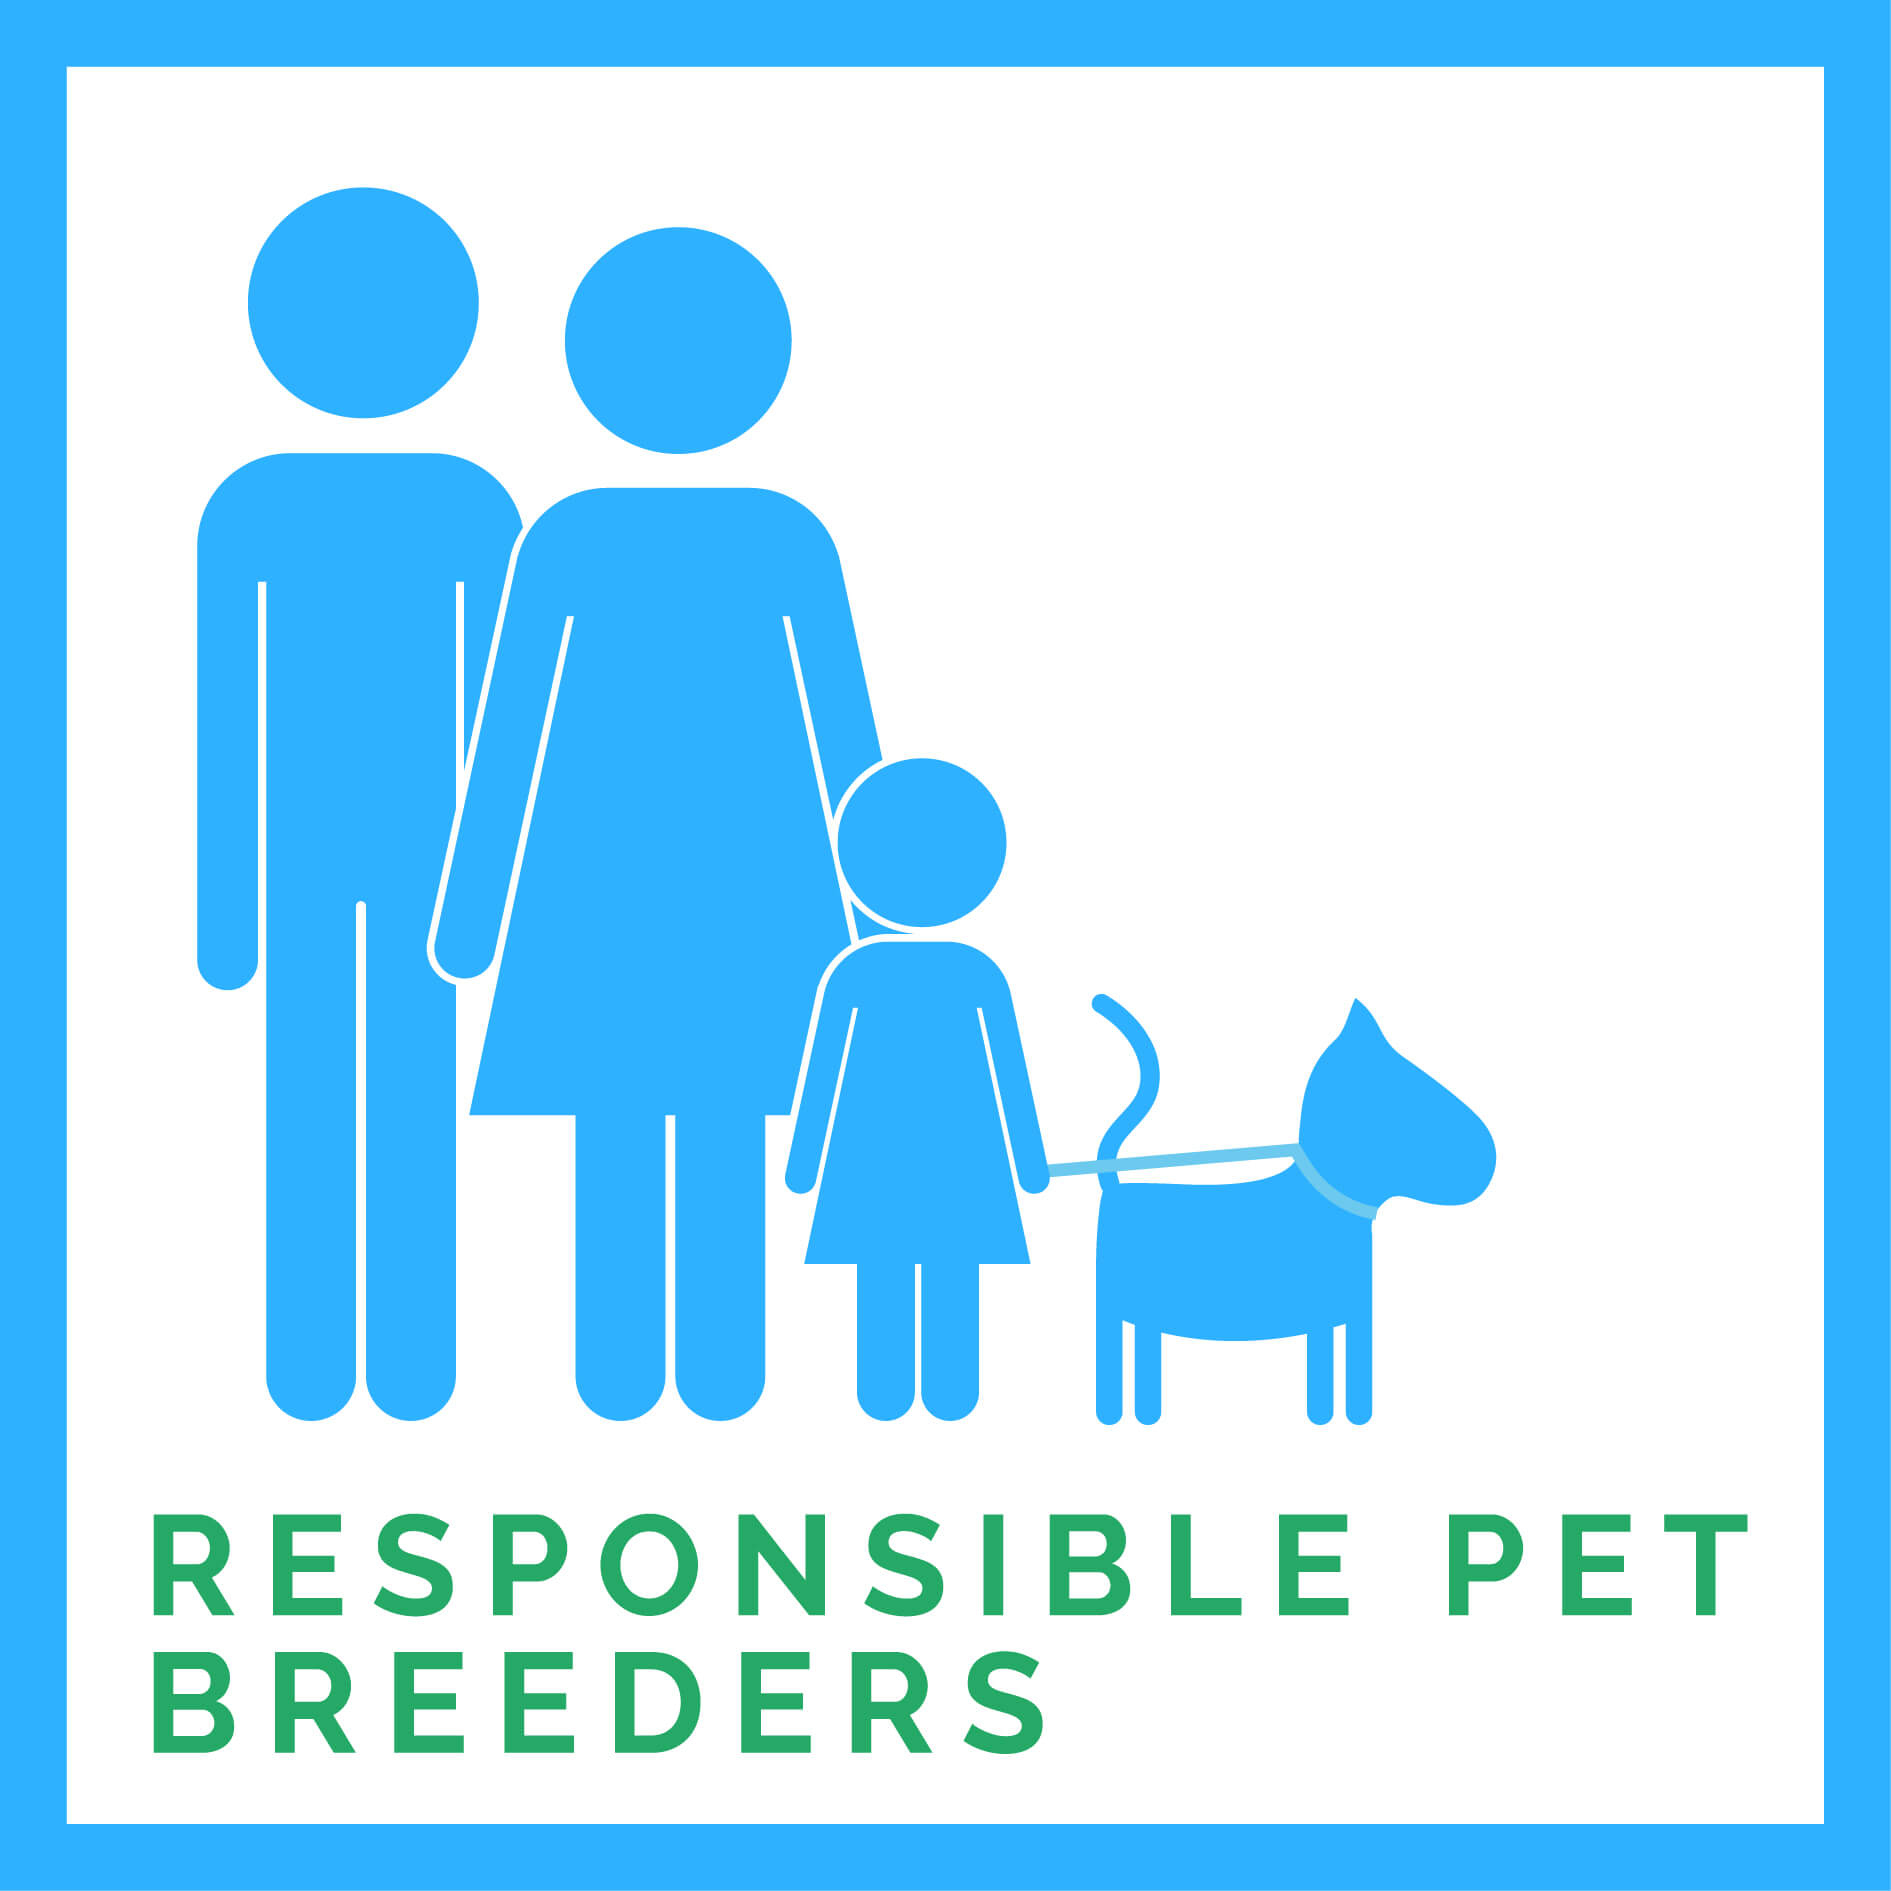 Responsible Pet Breeders